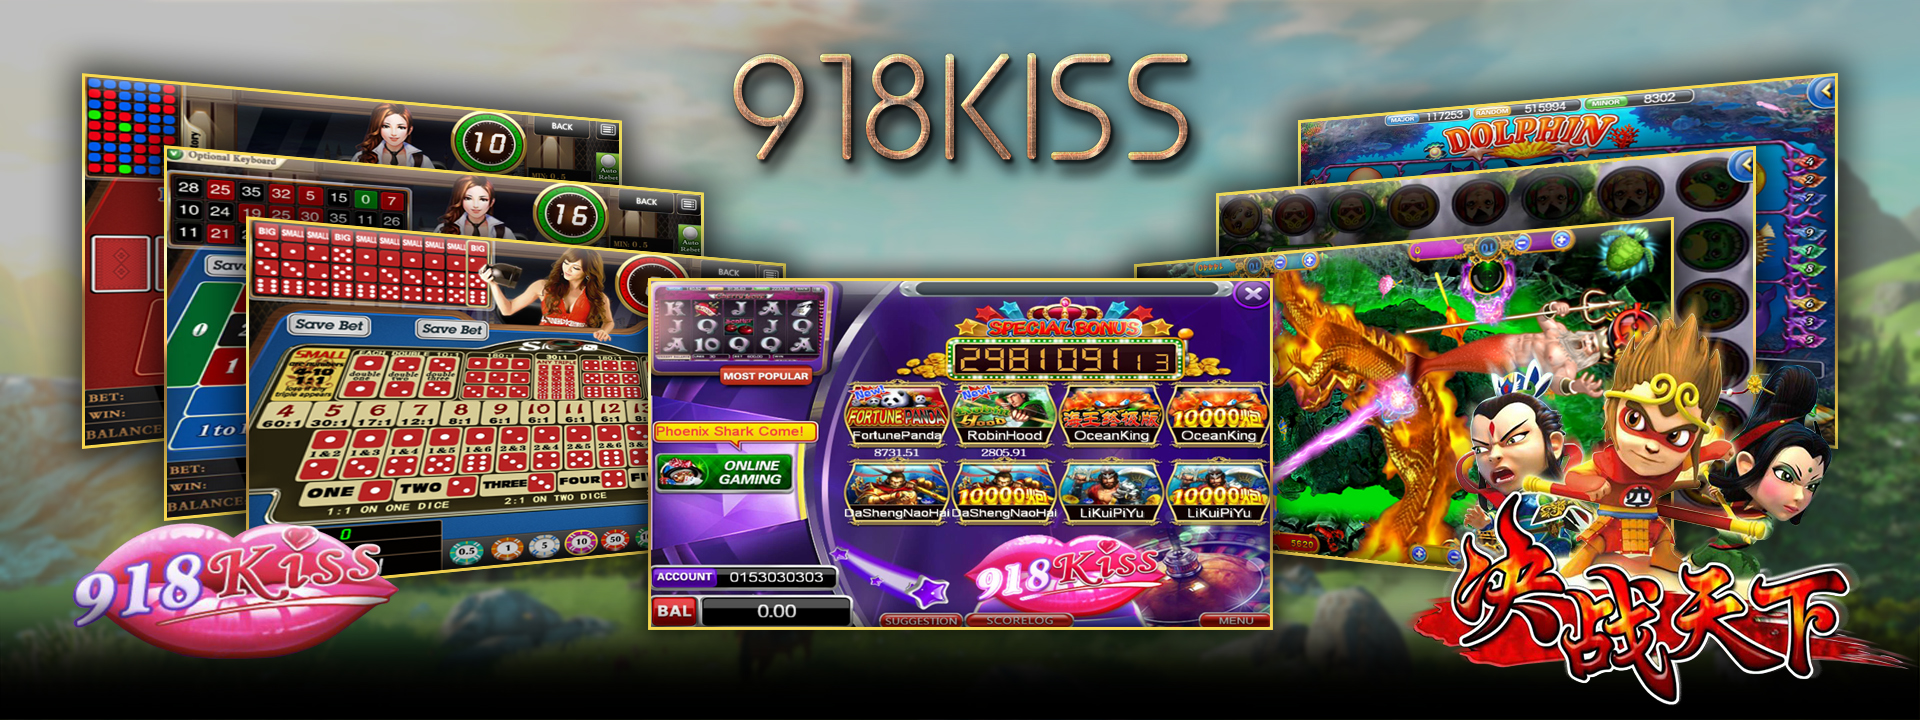 F2bet.com the Best Trusted Online Casino Malaysia for You